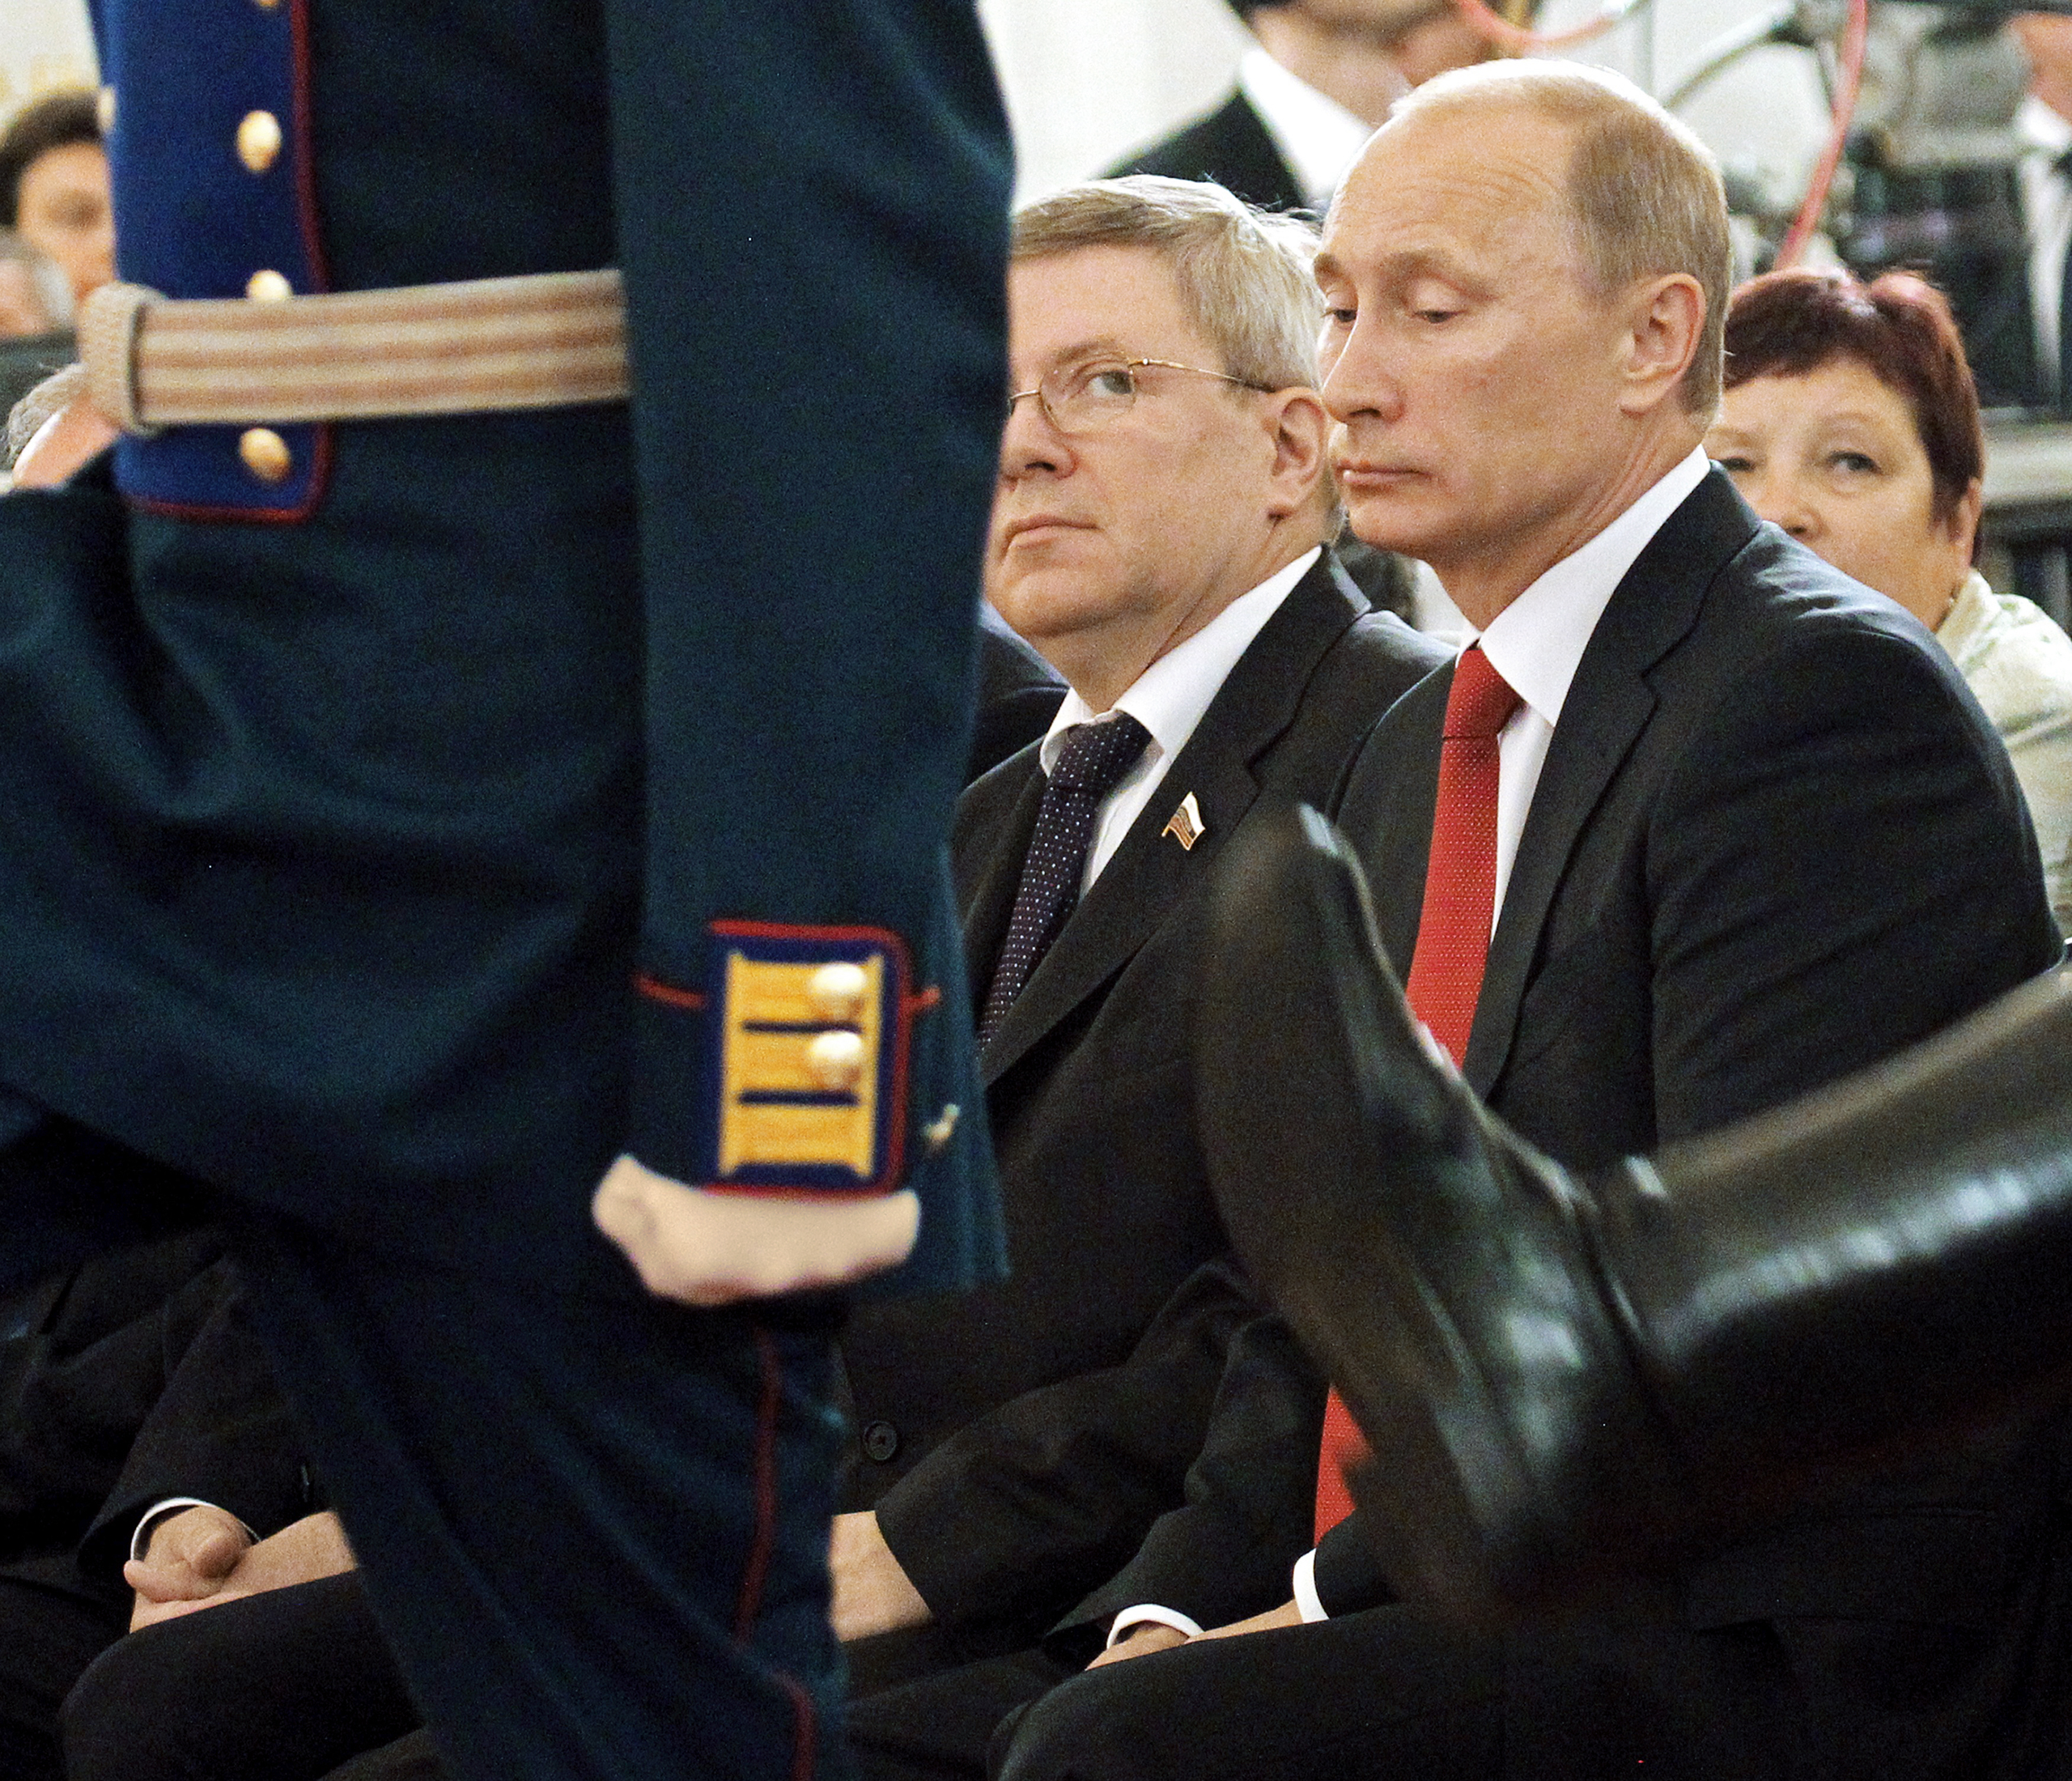 Former Russian senator Alexander Torshin, center, with Vladimir Putin at a Kremlin ceremony in 2011